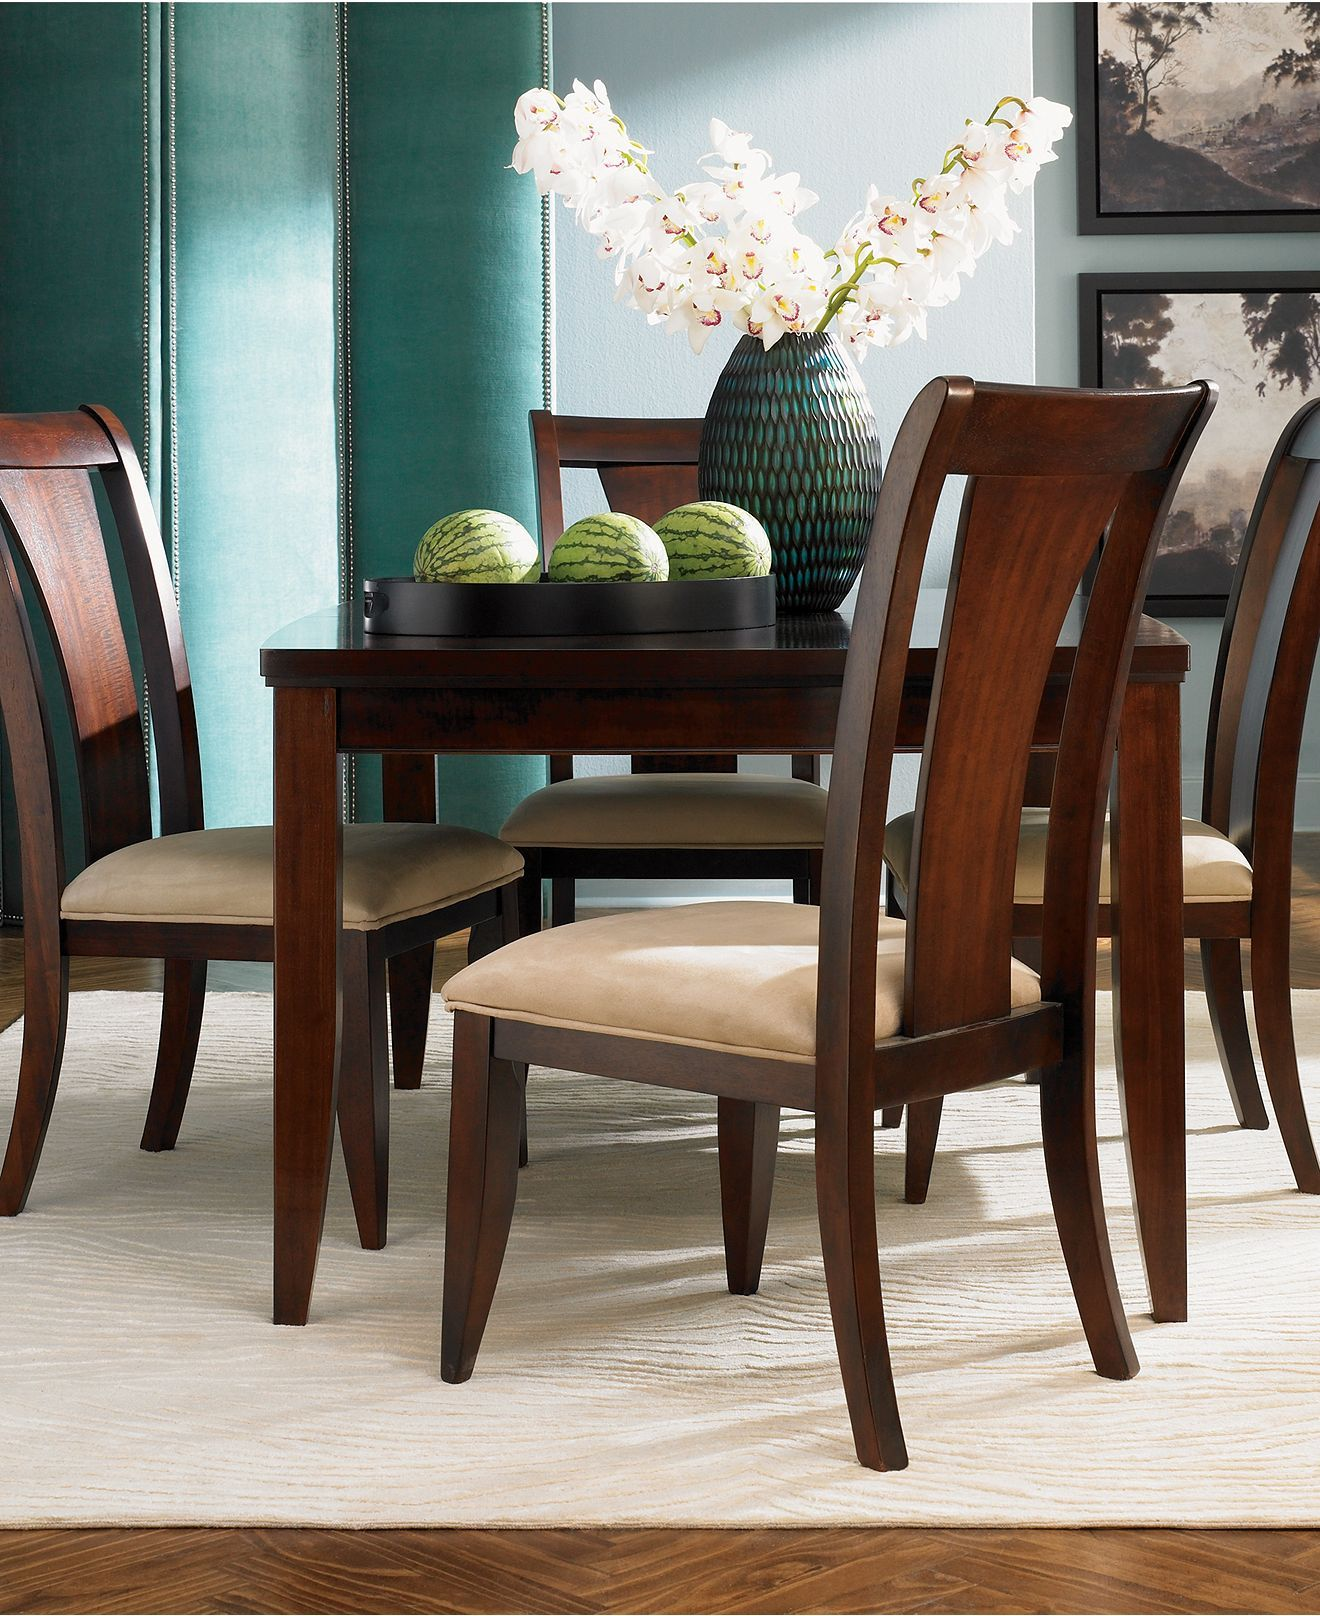 Metropolitan Dining Room Sets   Furniture   Macyu0027s $1189 7 Piece Set. Table  40x66